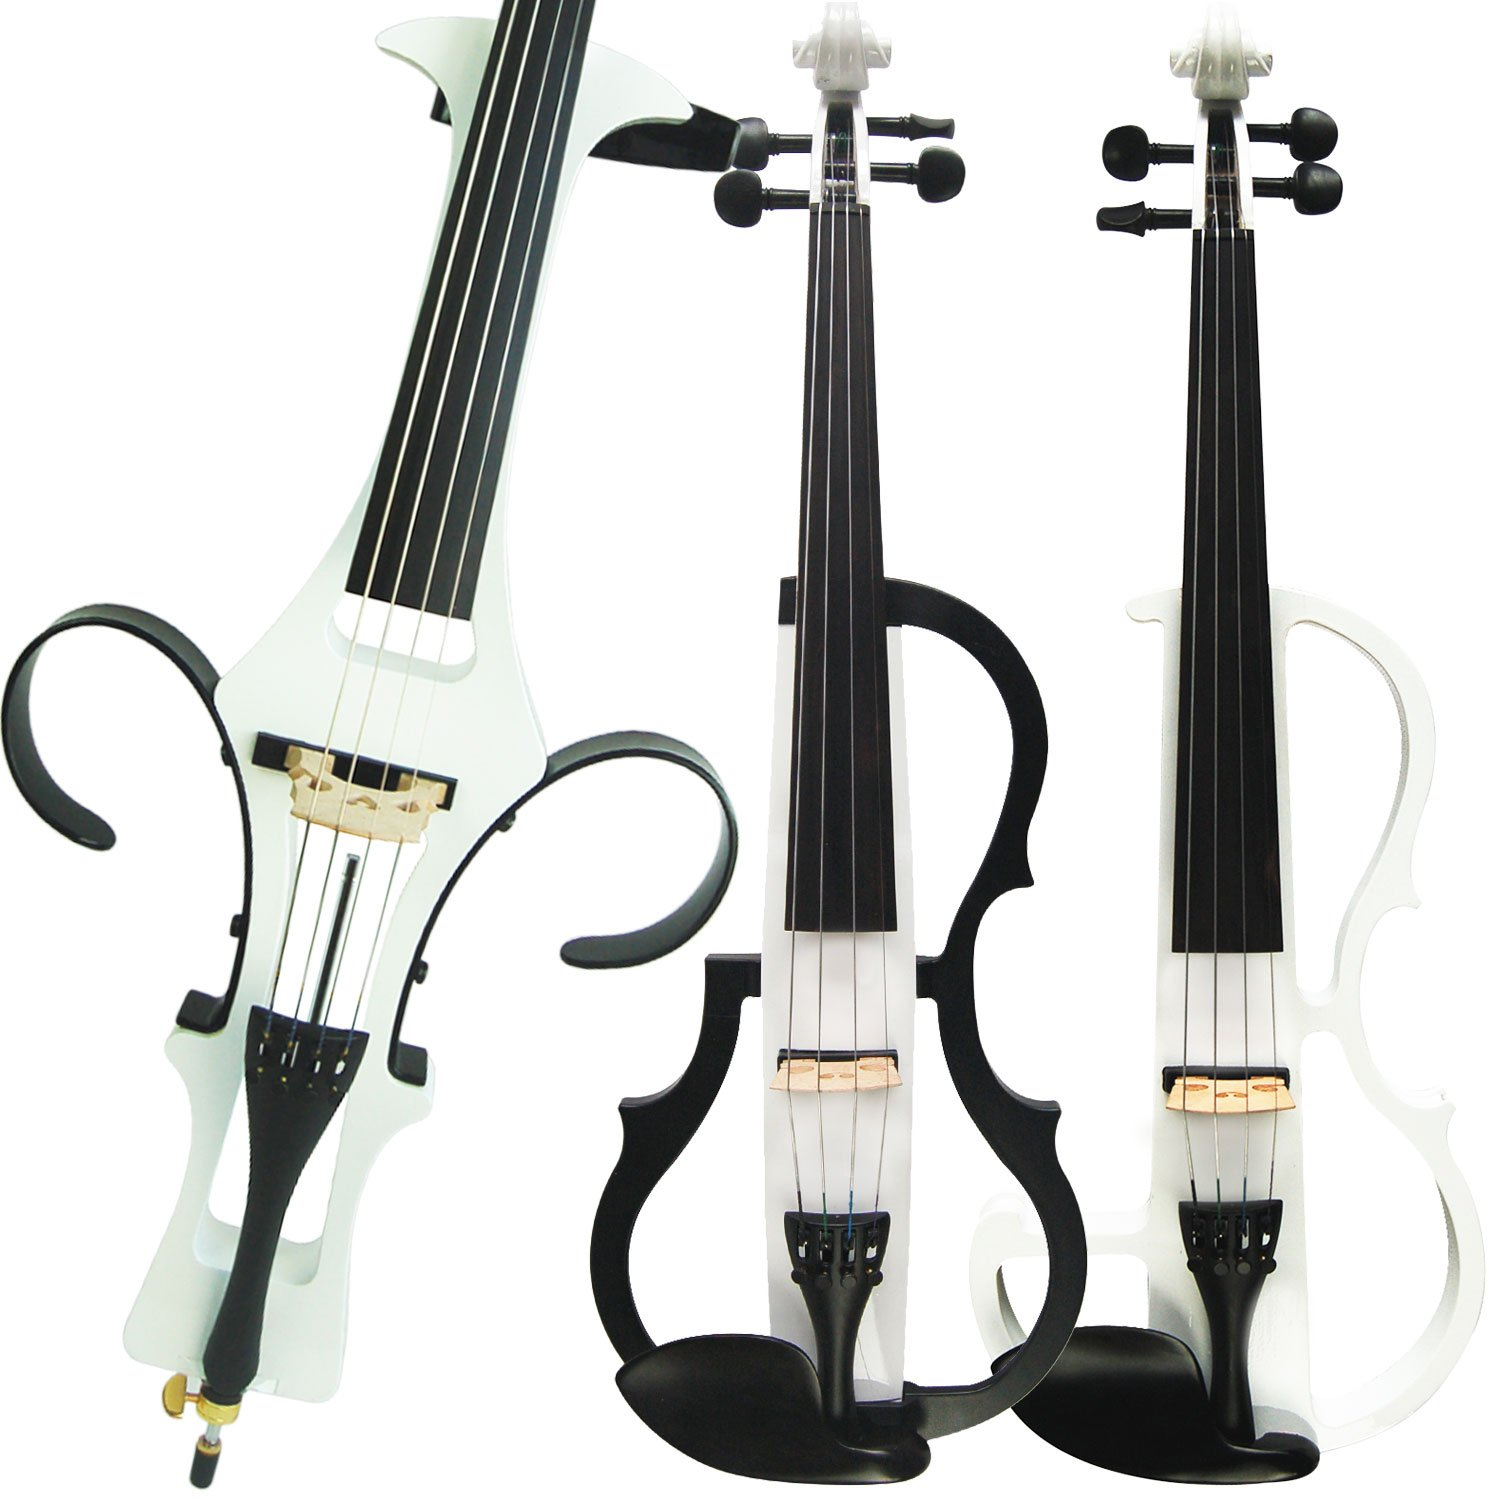 Aliyes Handmade Professional Solid Wood Electric Cello 4/4 Full Size Silent Electric Cello-1801 by Aliyes